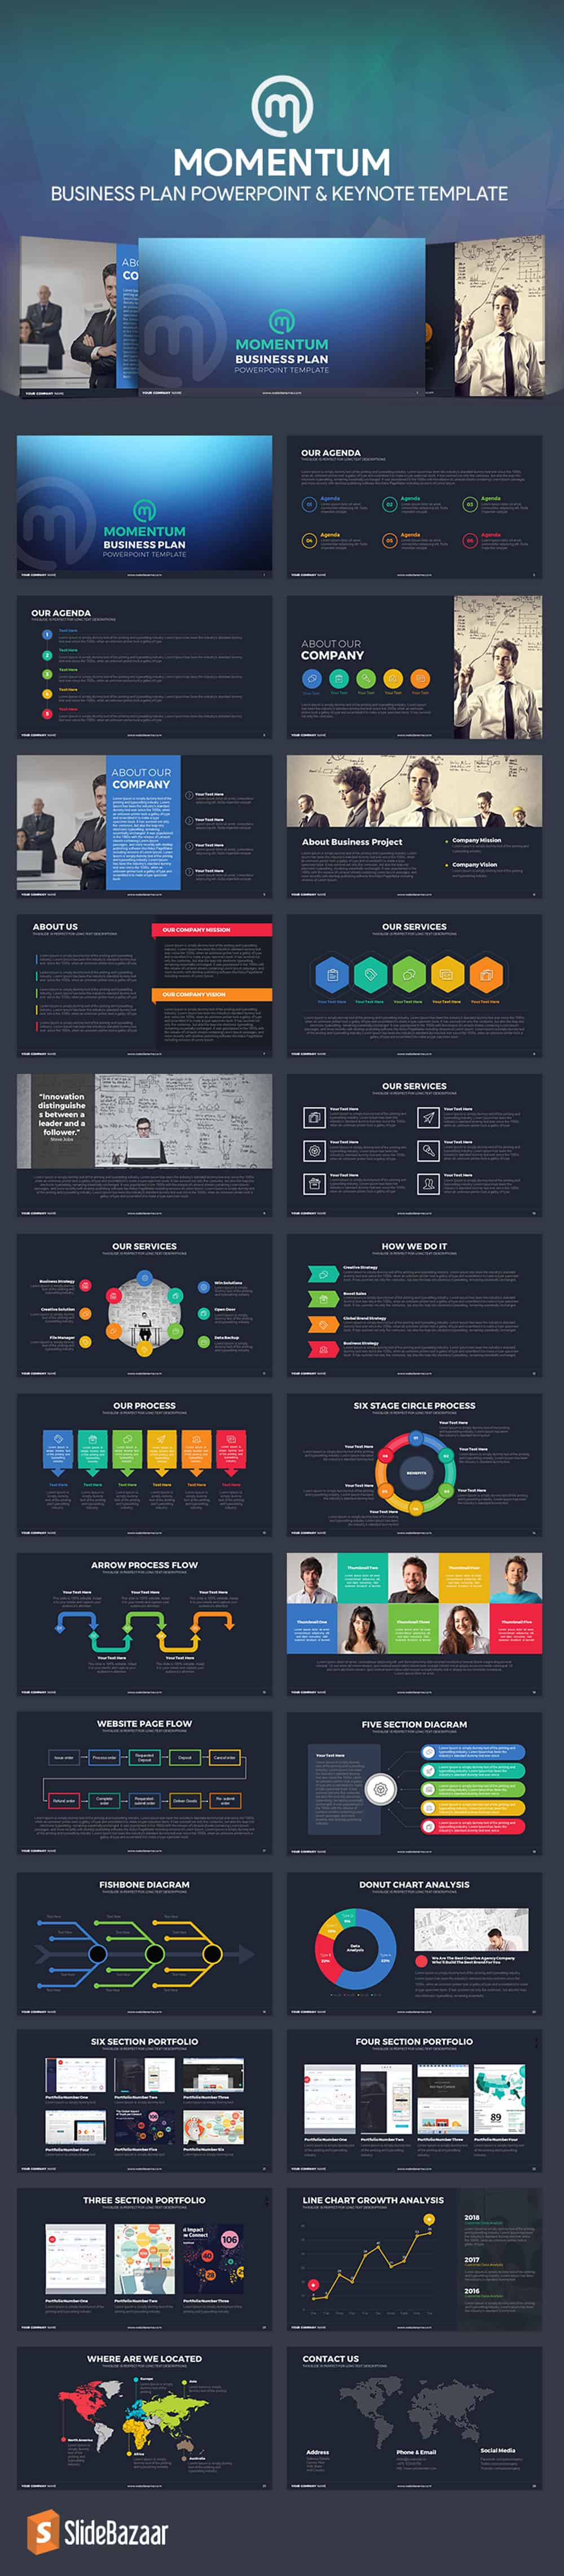 momentum-business-plan-PowerPoint-template